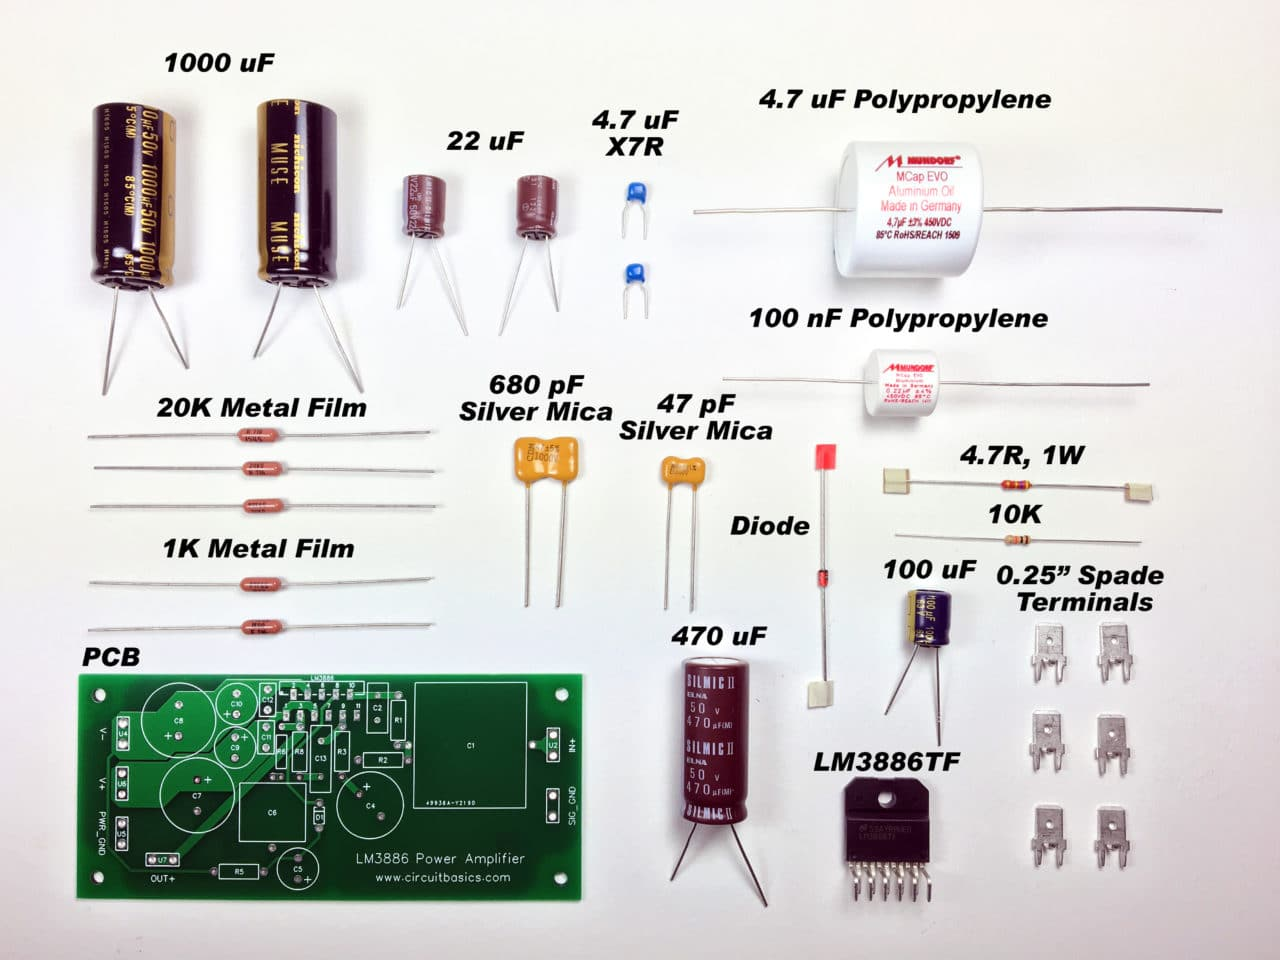 A Complete Guide To Design And Build Hi Fi Lm3886 Amplifier For Circuit Diagram Other Details Click Here The Total Cost Came About 118 Both Channels Not Including Chassis Power Supply Wiring Parts You Can It Lot Less With Cheaper